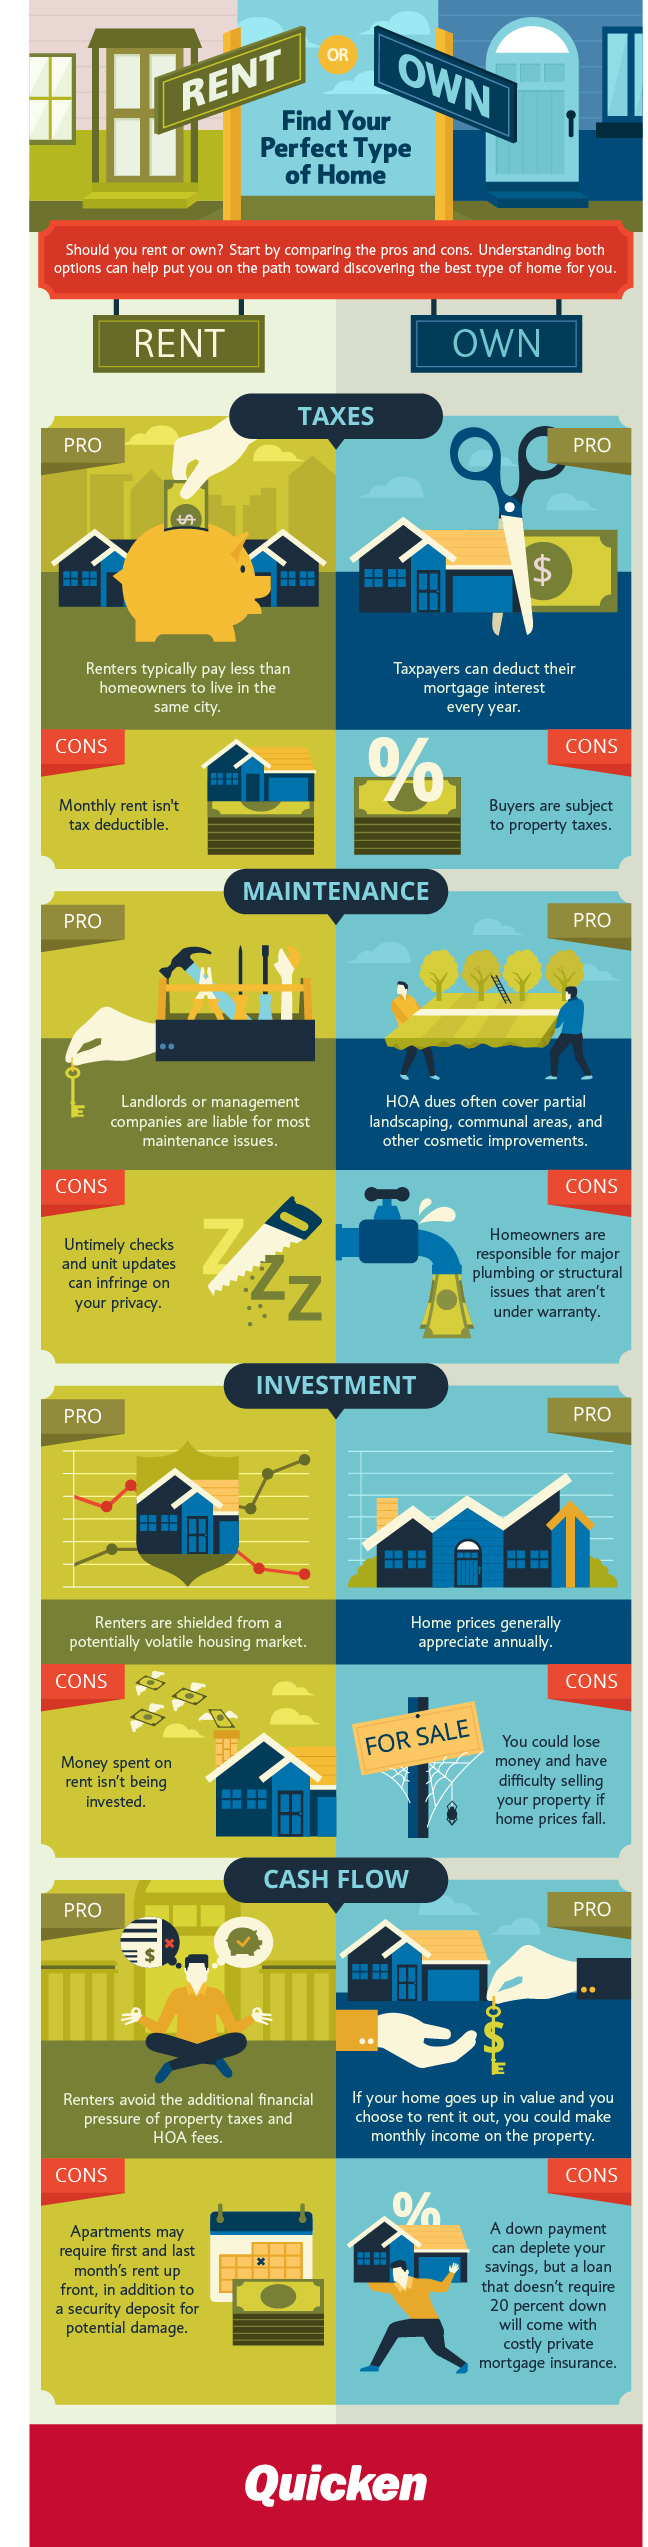 Rent or Own your Home [Infographic]